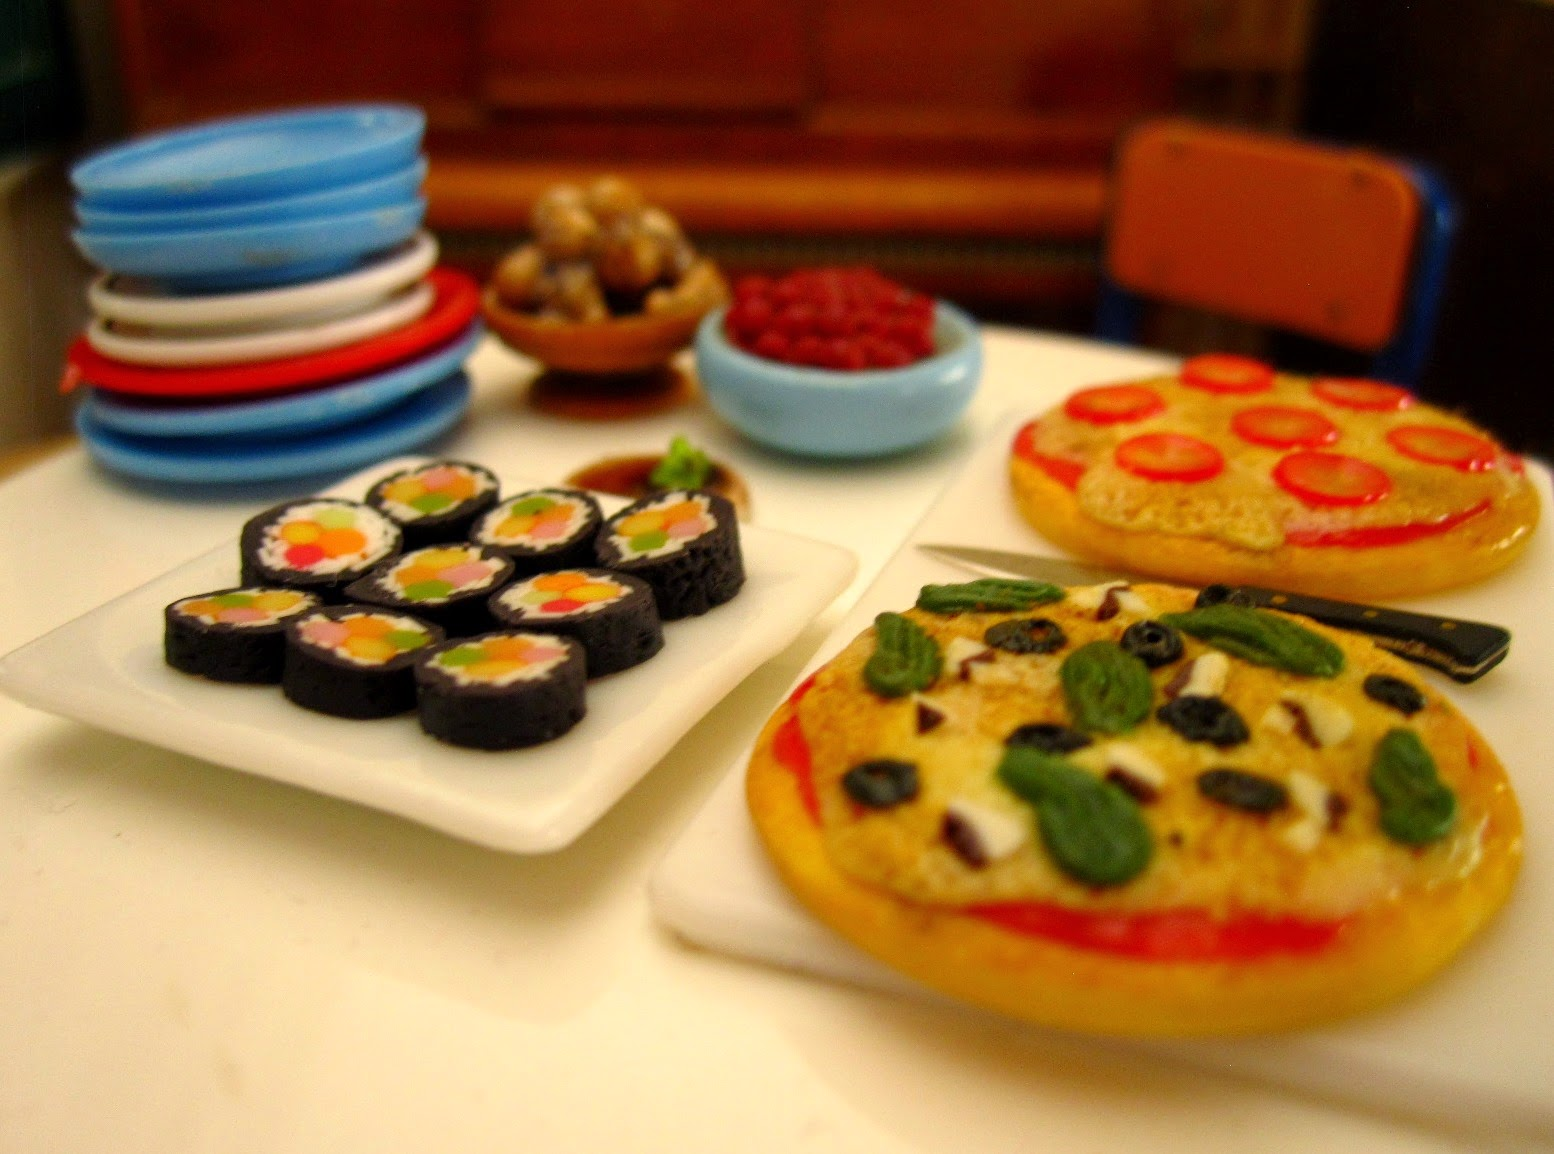 Miniature dolls' house savoury food arranged on a table, including sushi, nuts, olives and two sorts of pizza.